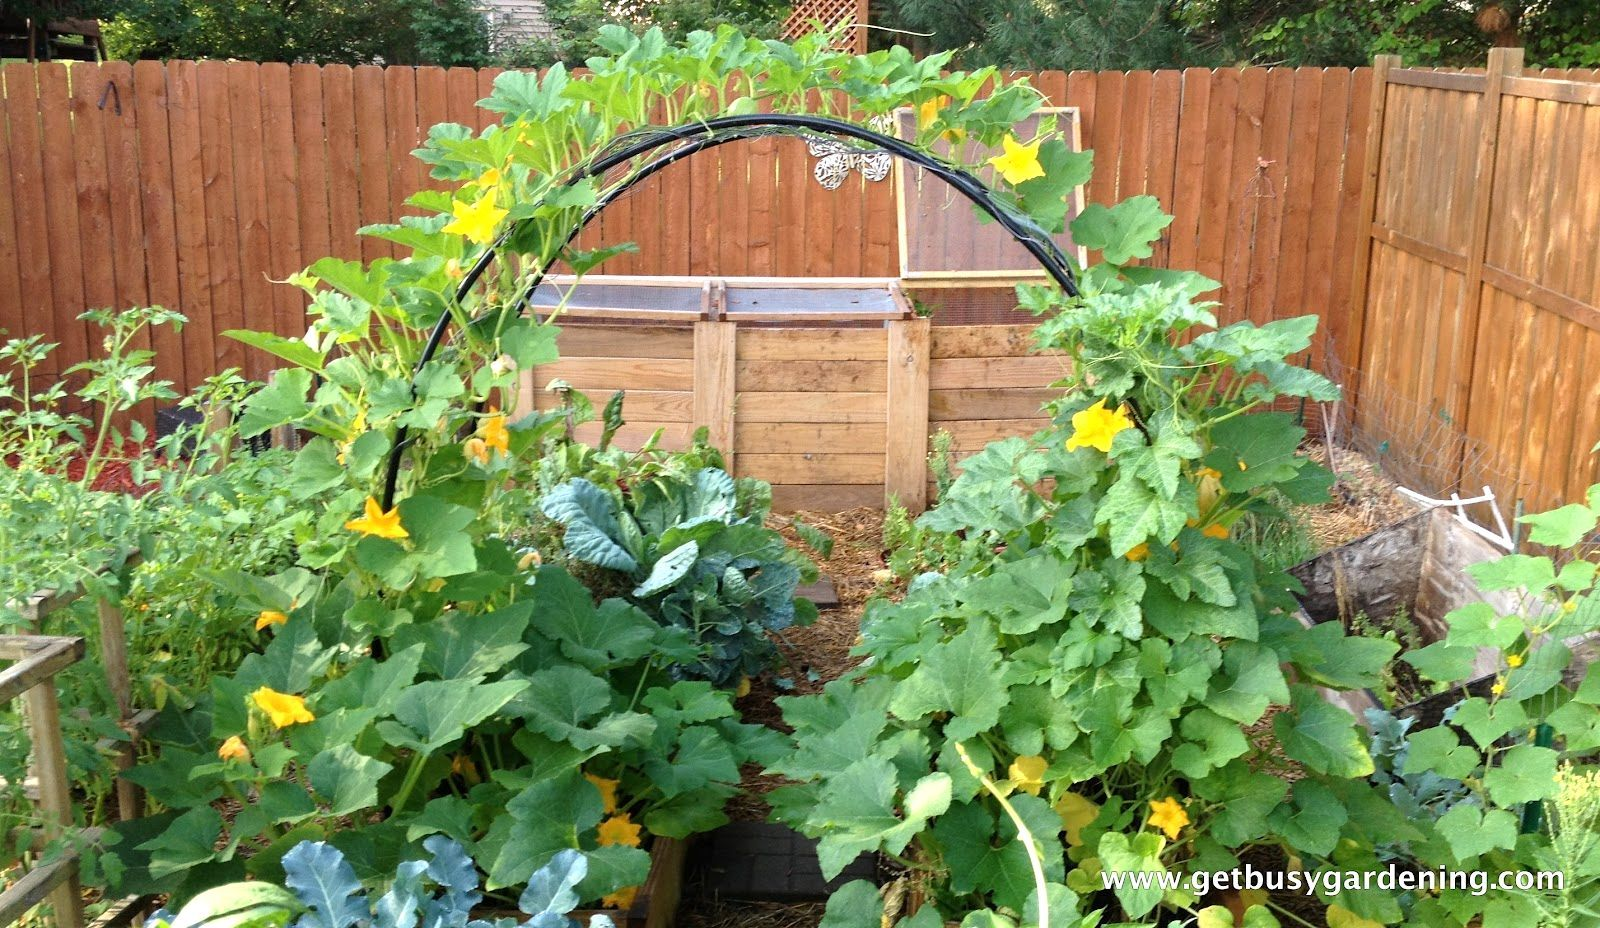 Small vegetable garden layout ideas amazing creative and inspirational vegetable garden plans idea in